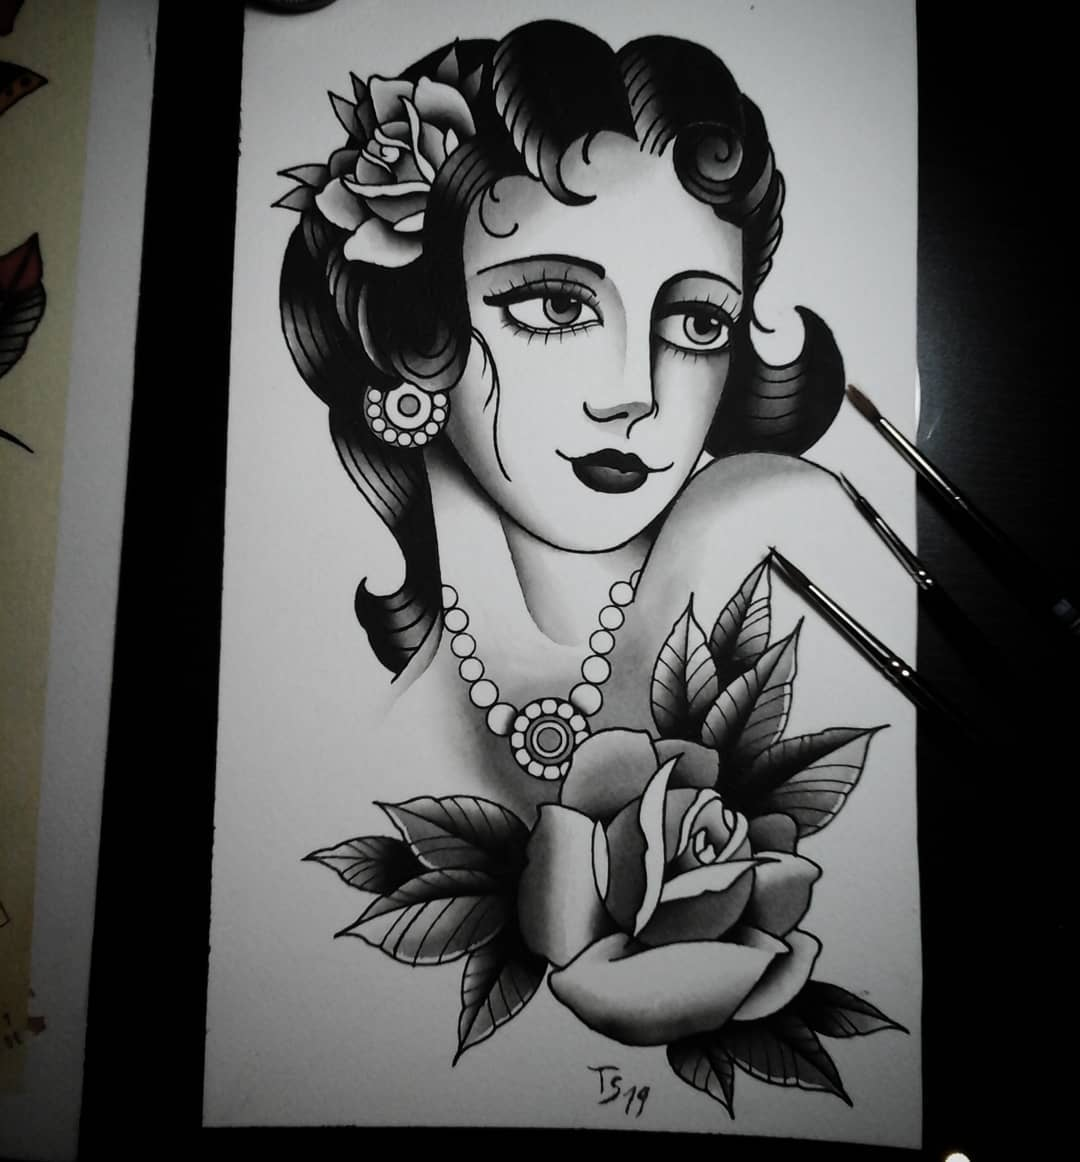 Finally done with this lady #germantattooers #germanartist #tattooworkers #tatto